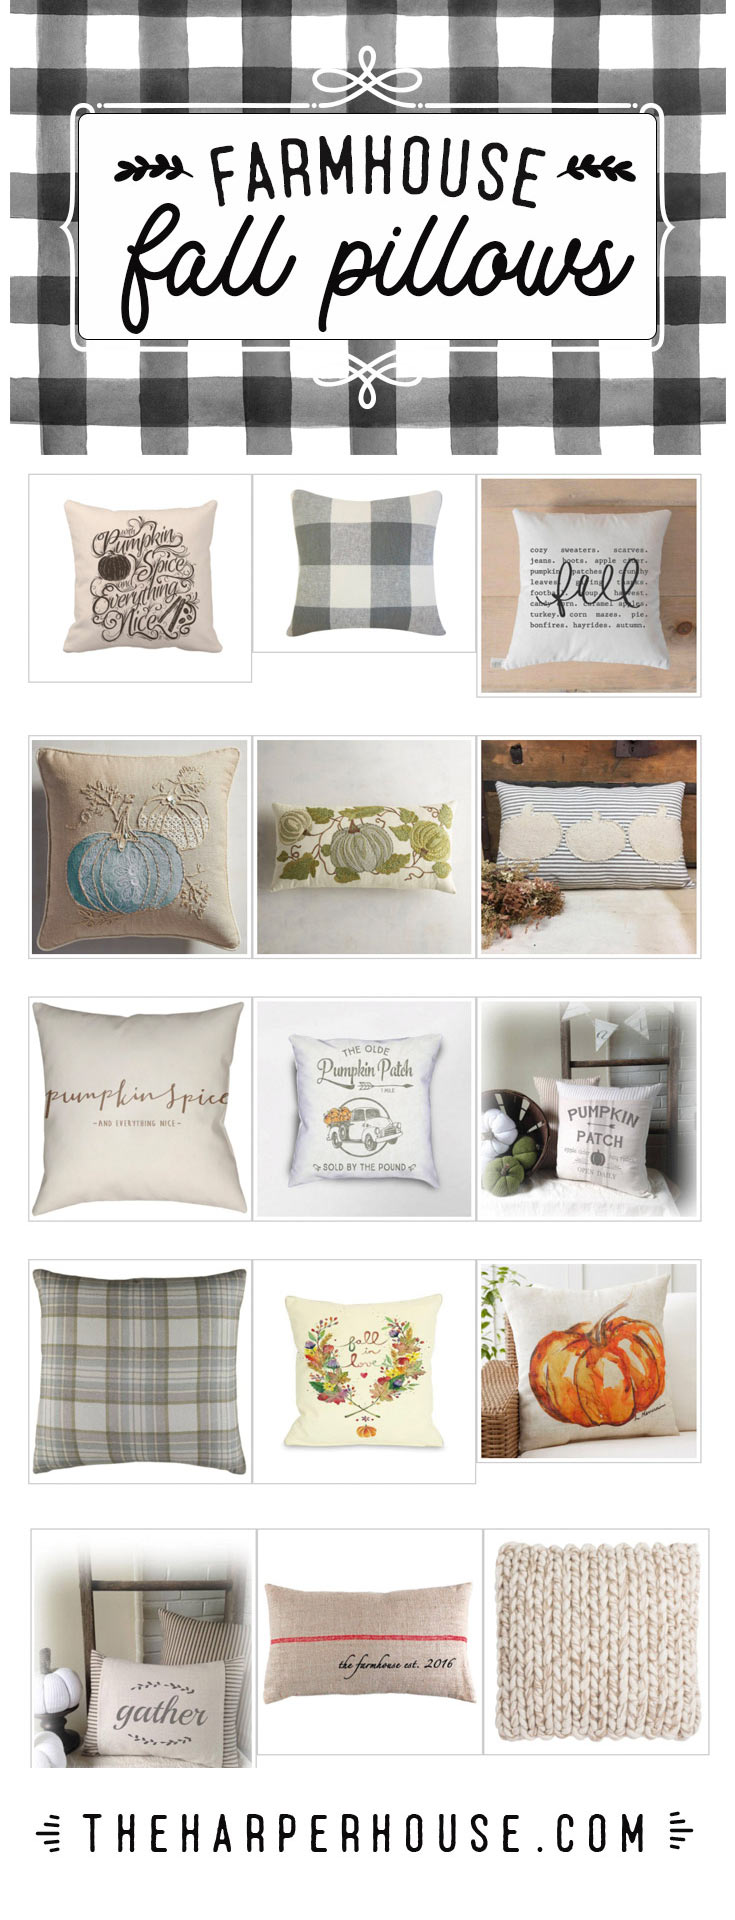 Cute fall pillows perfect to decorate your modern farmhouse for fall!